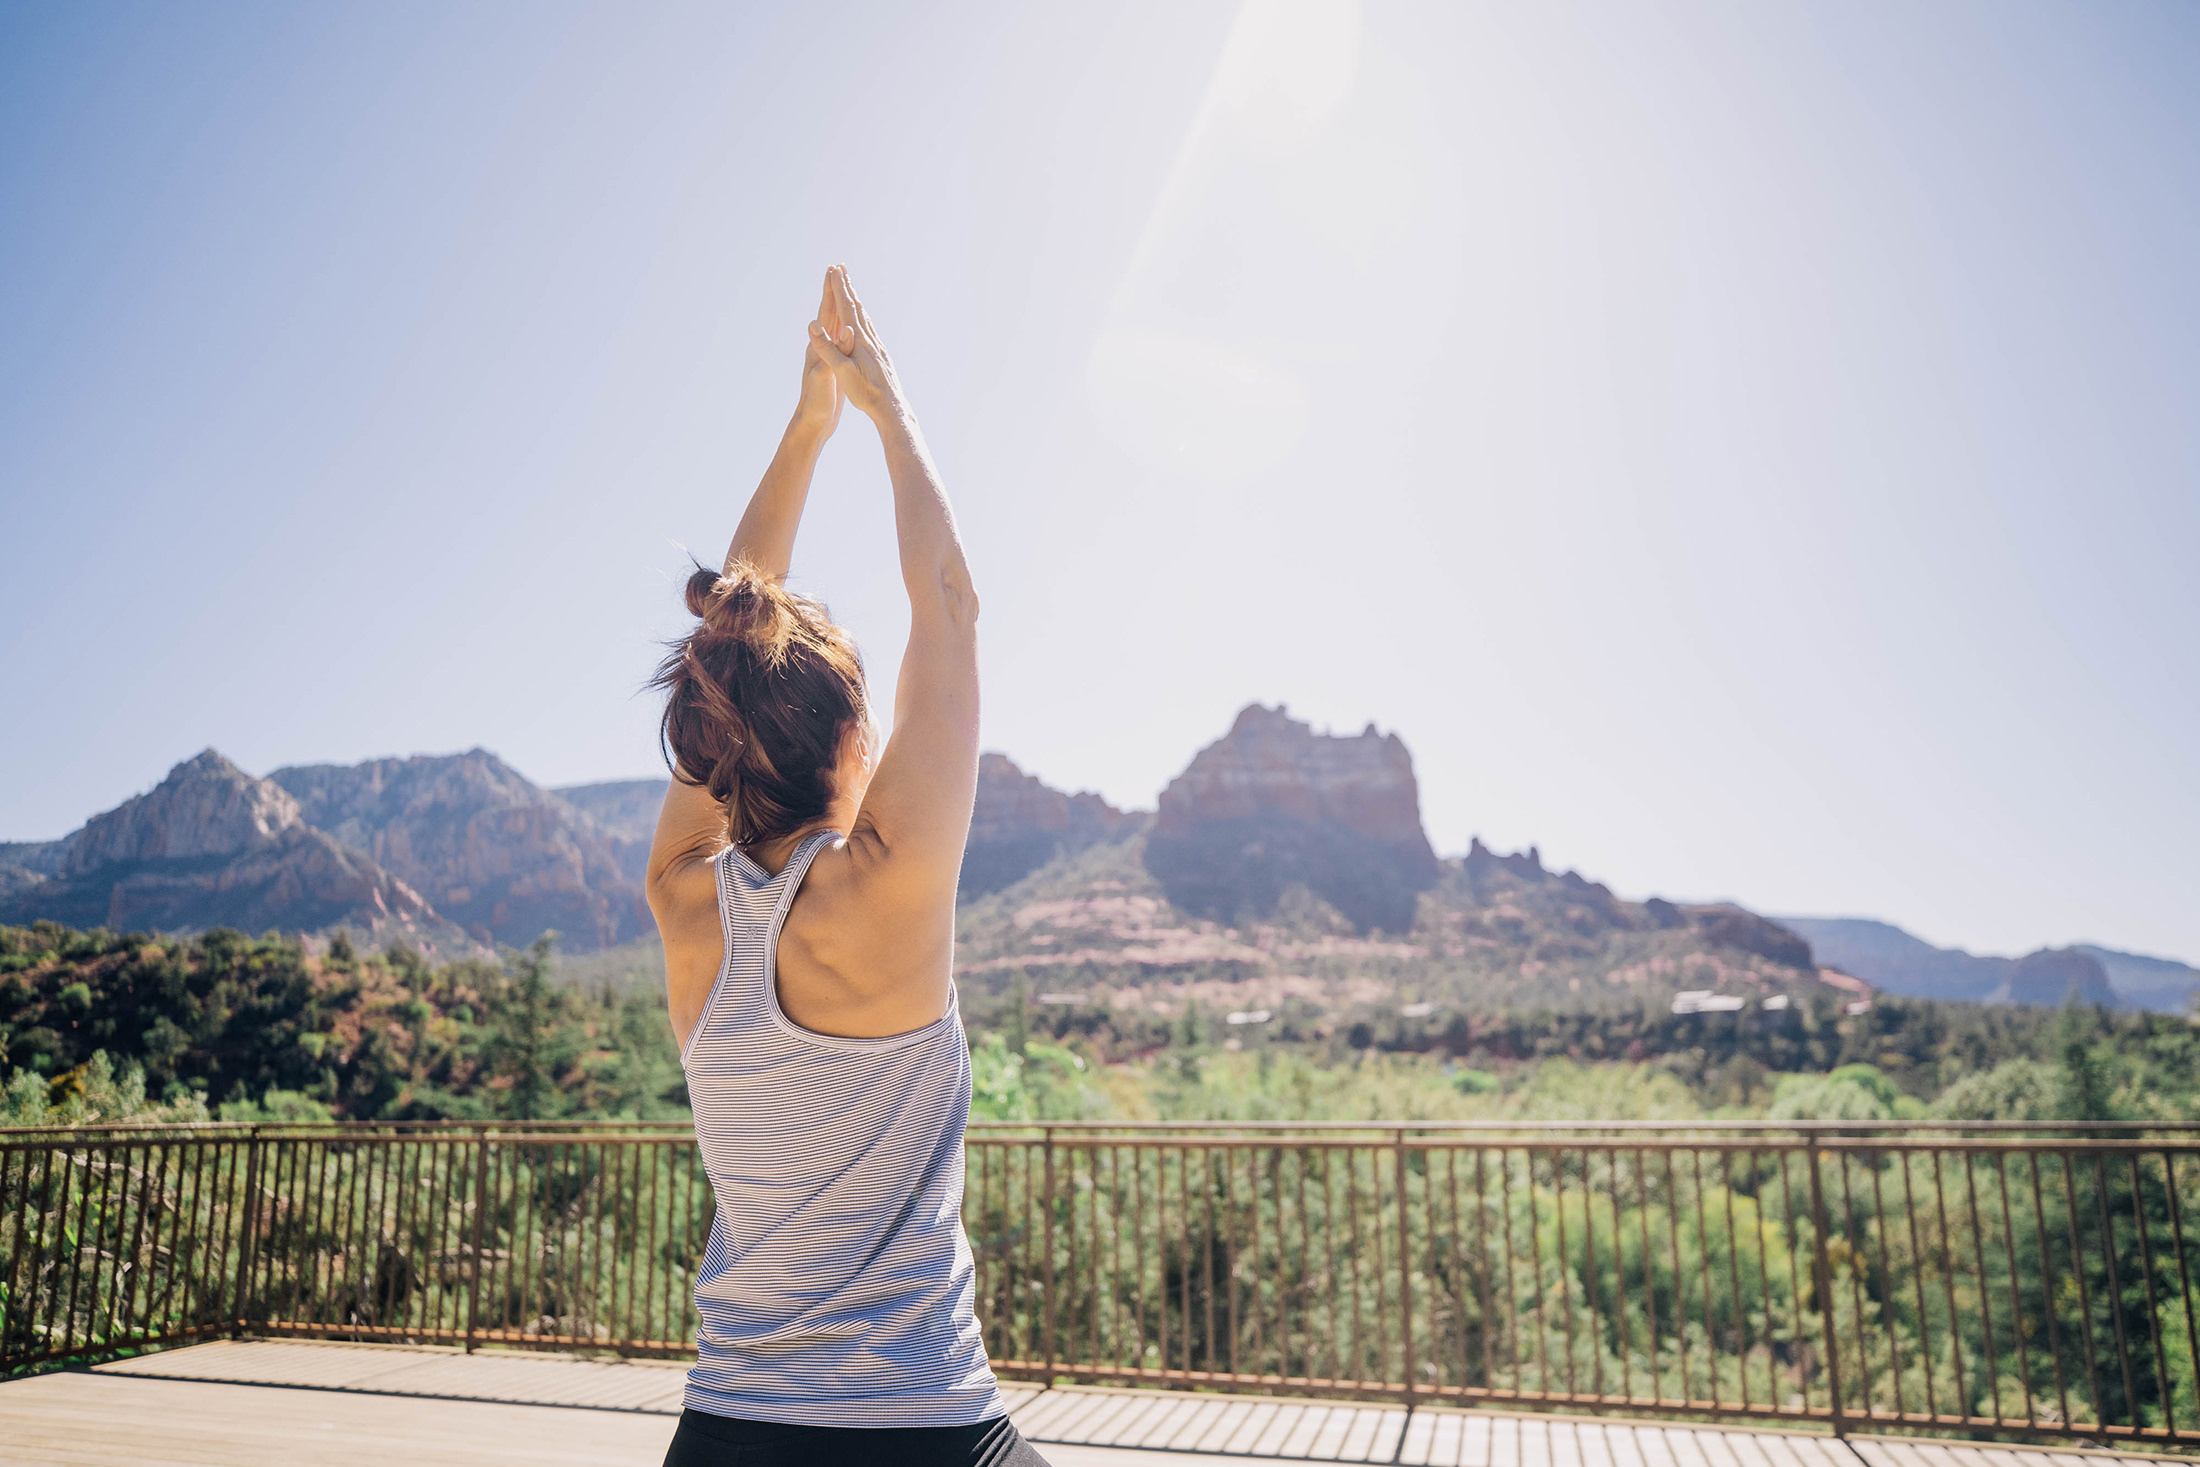 A woman practicing yoga outside looking out at the tall mesas in the distance